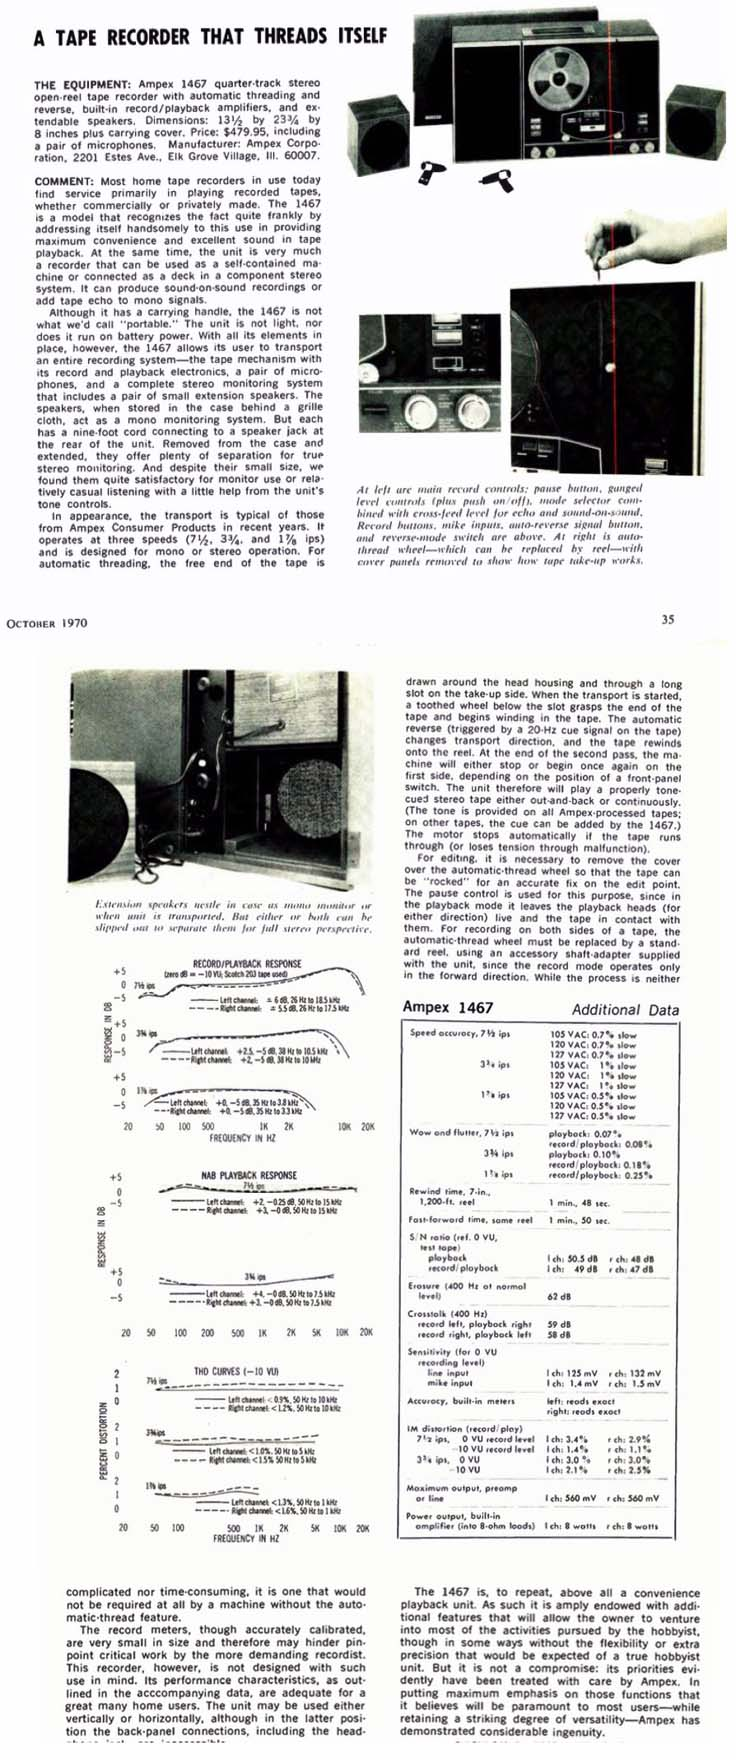 1970 Review of the Ampex 1467 reel to reel tape recorder in the Reel2ReelTexas.com vintage recording collection